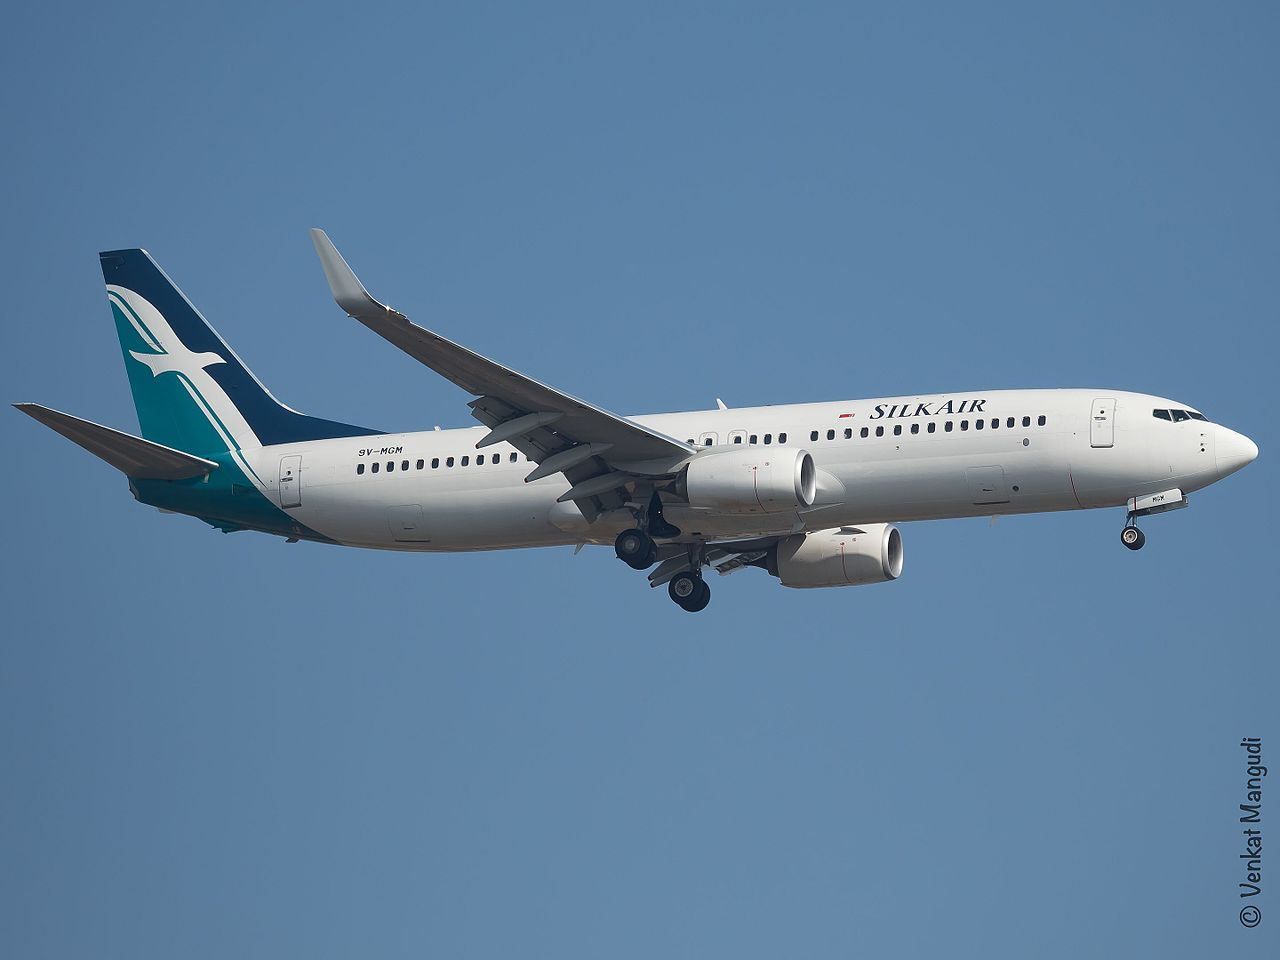 Silkair northern Australia